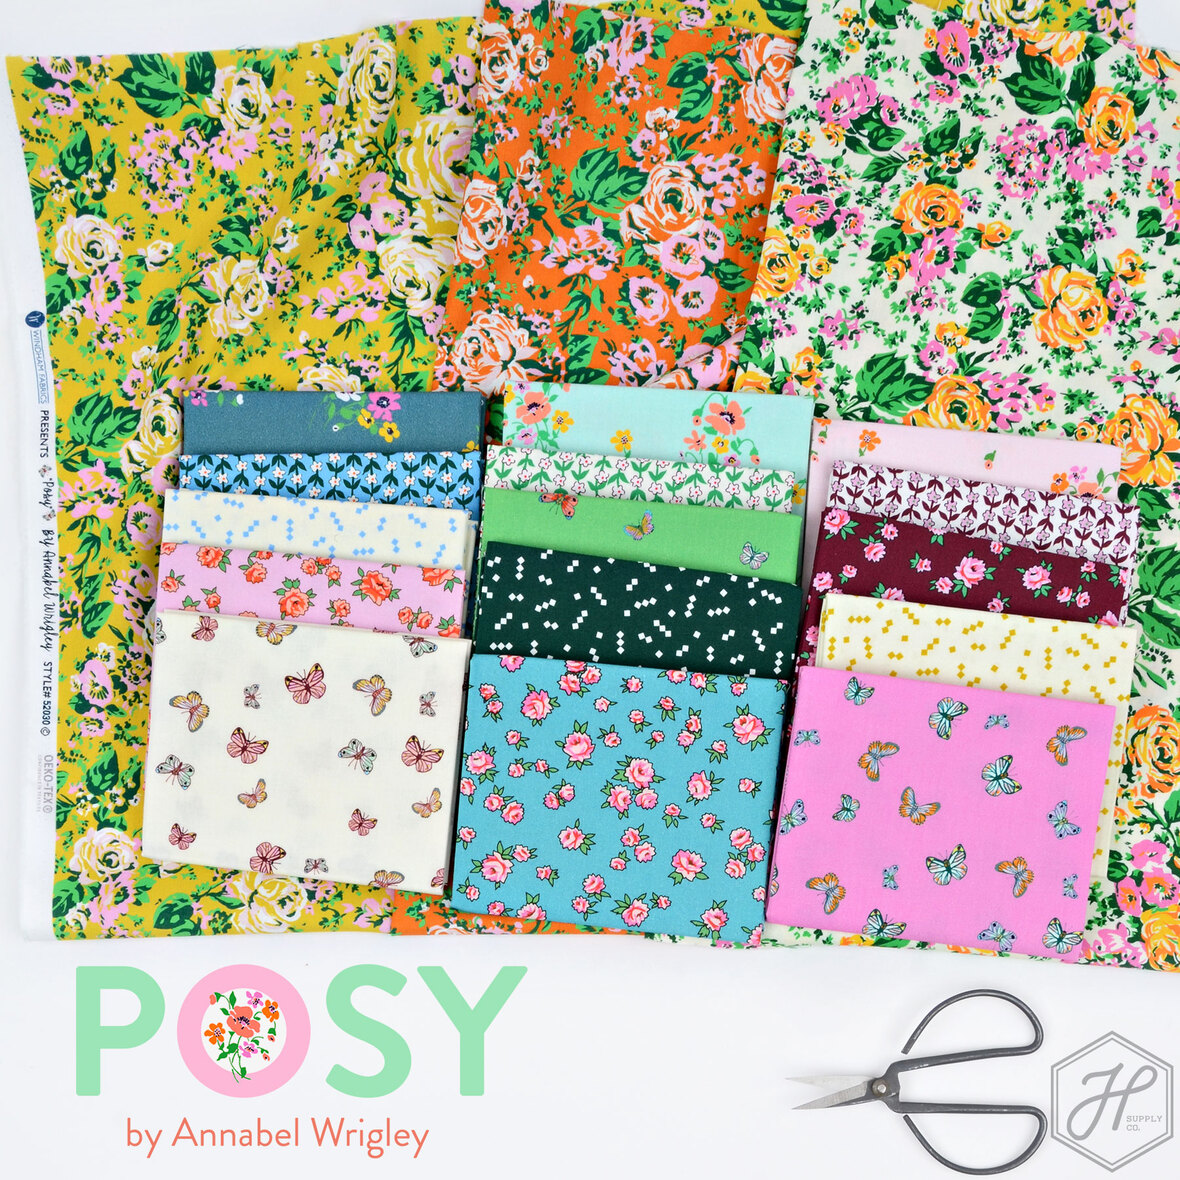 Posy-Annabel-Wrigley-for-Windham-fabric-at-Hawthorne-Supply-Co